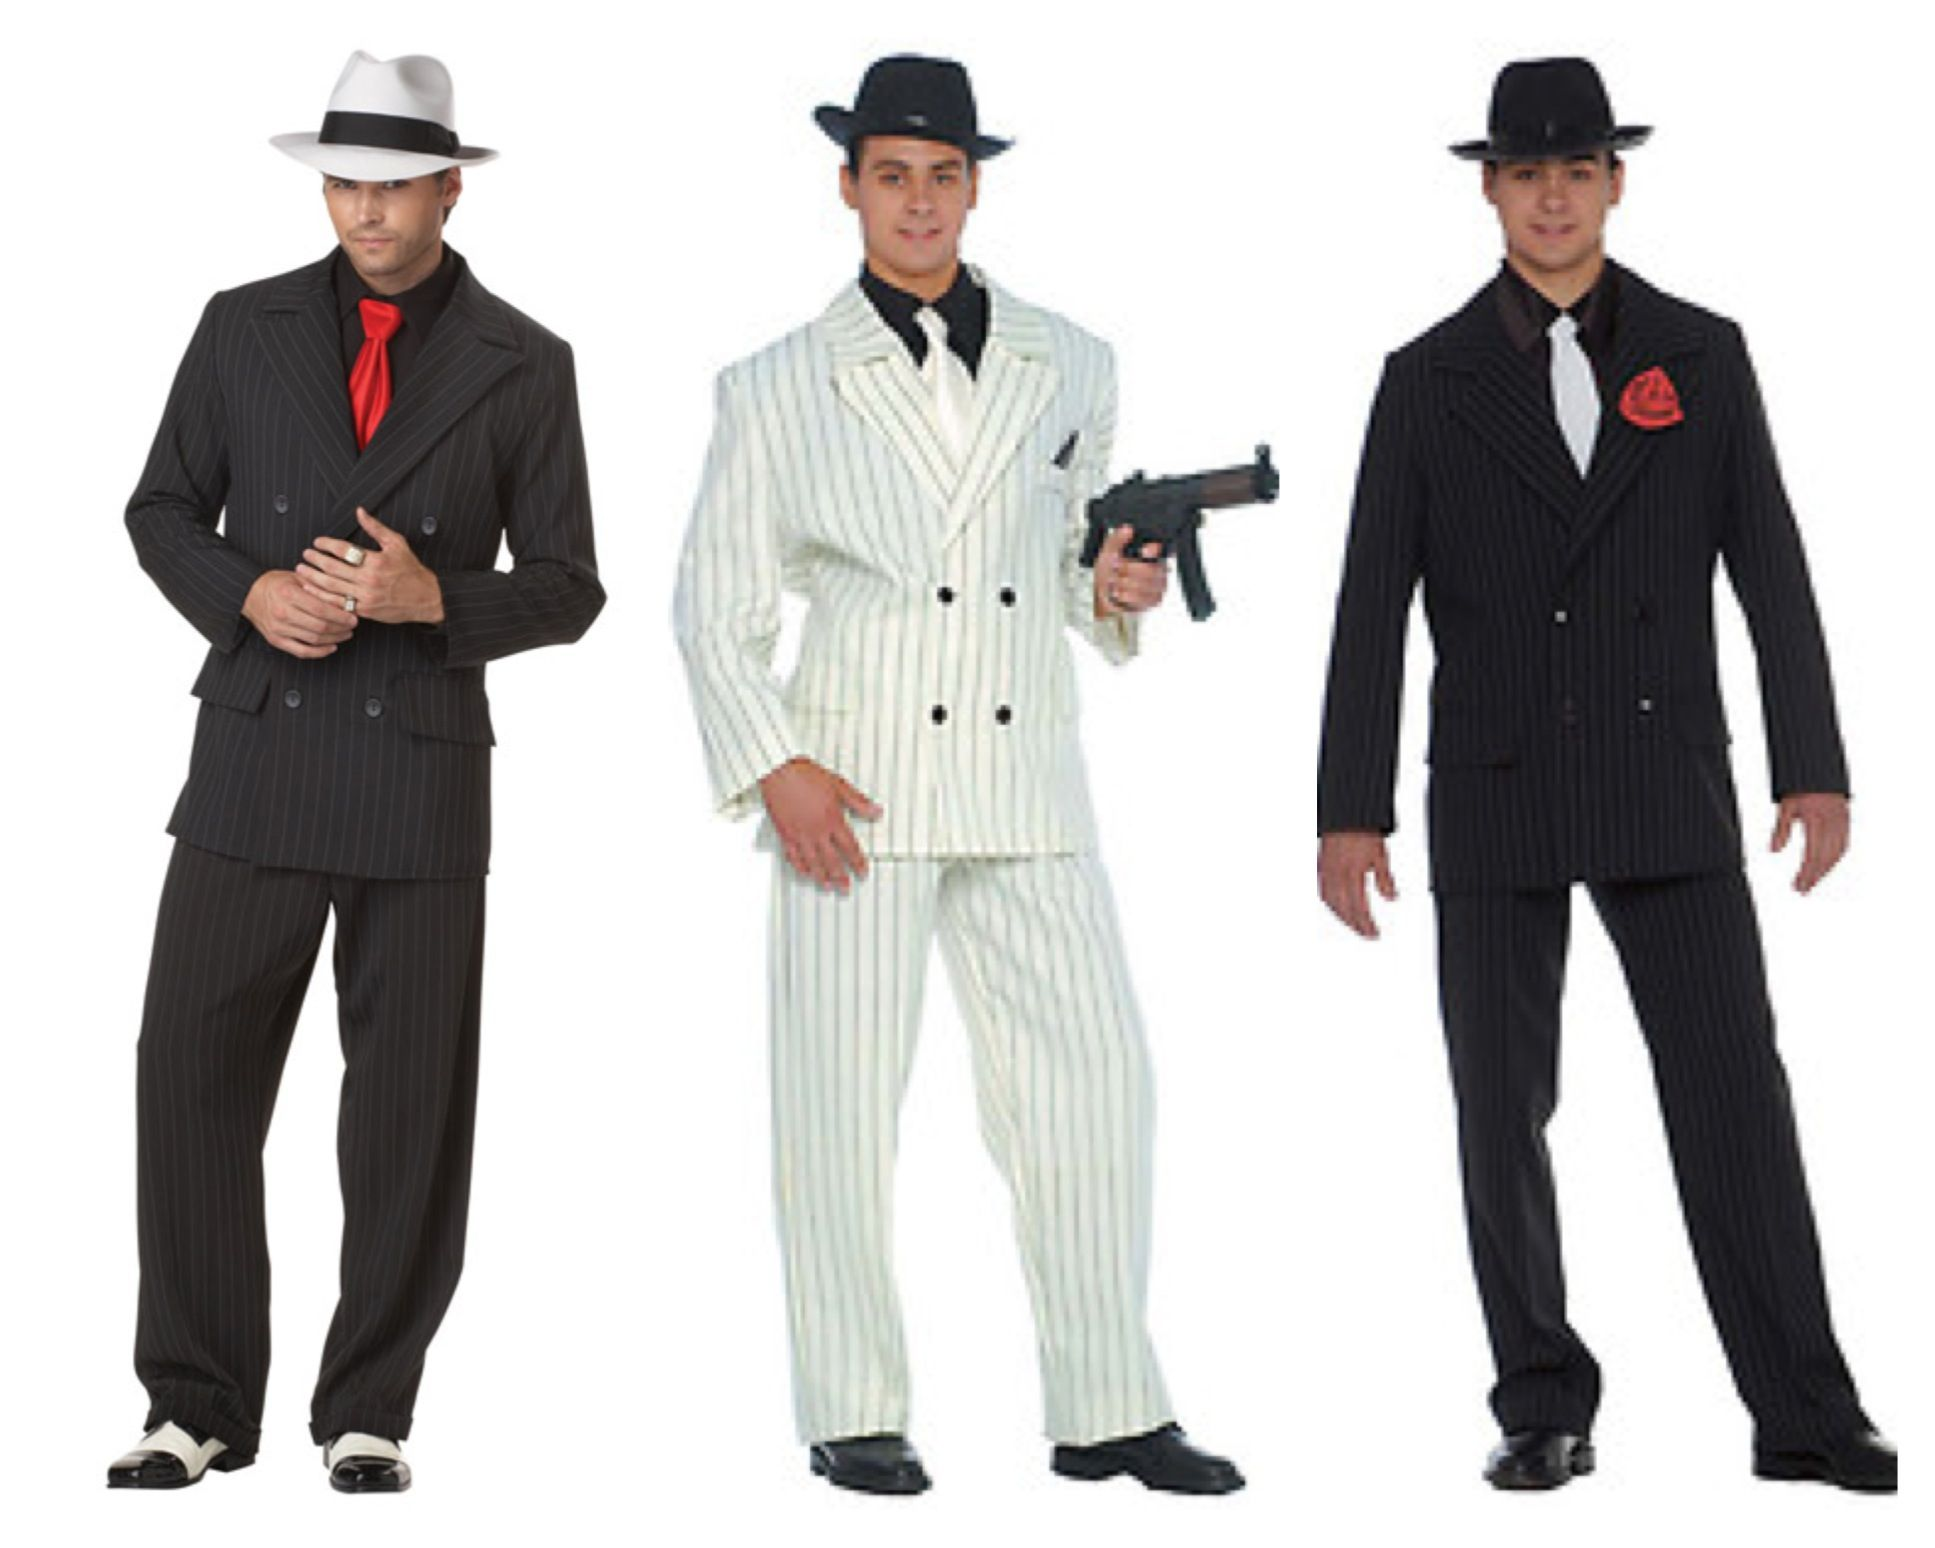 Opinion, flapper gangster costumes have found